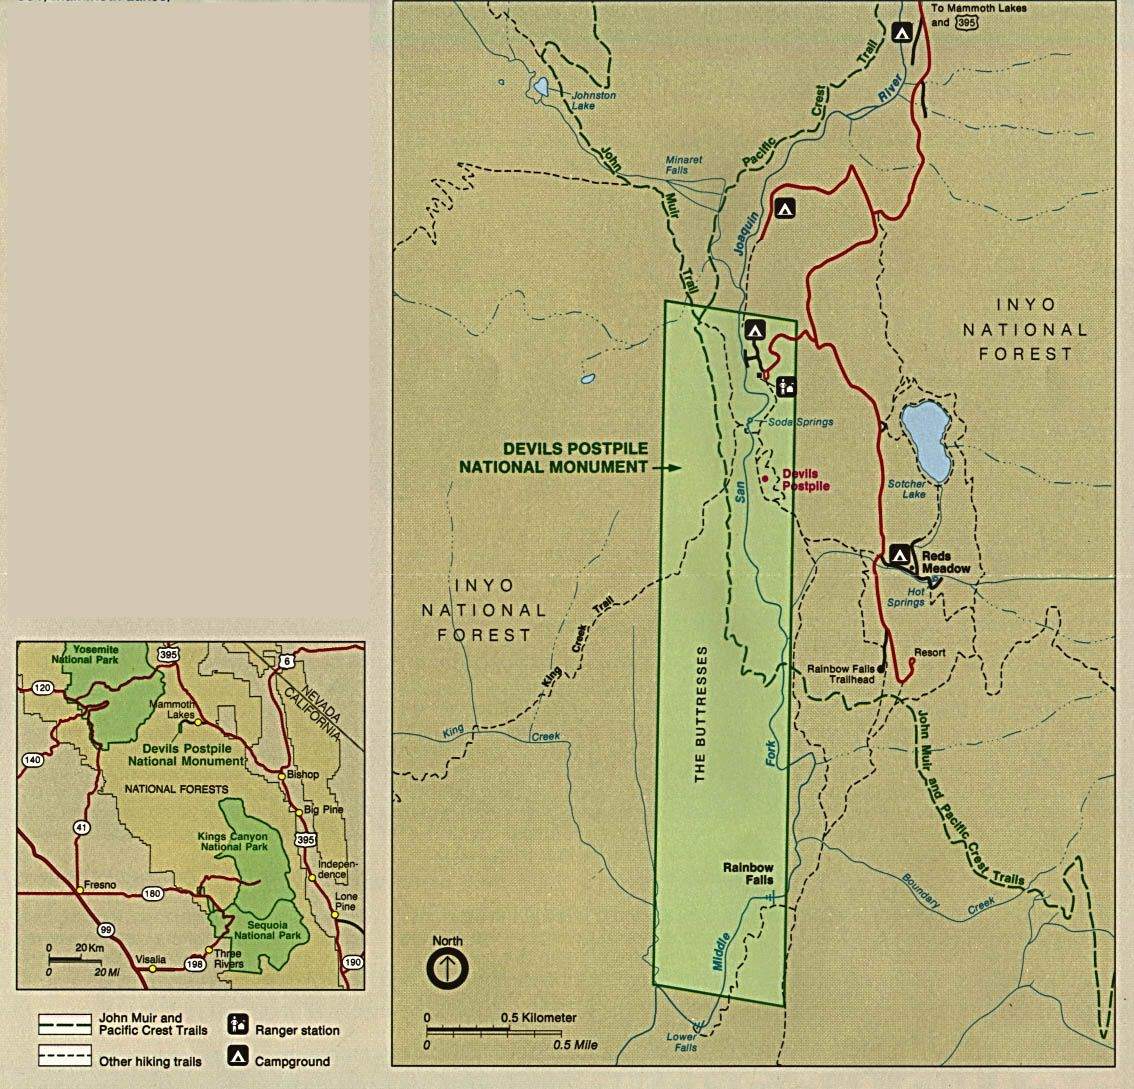 Devils Postpile National Monument Map - Devil039s Postpile • mappery ...